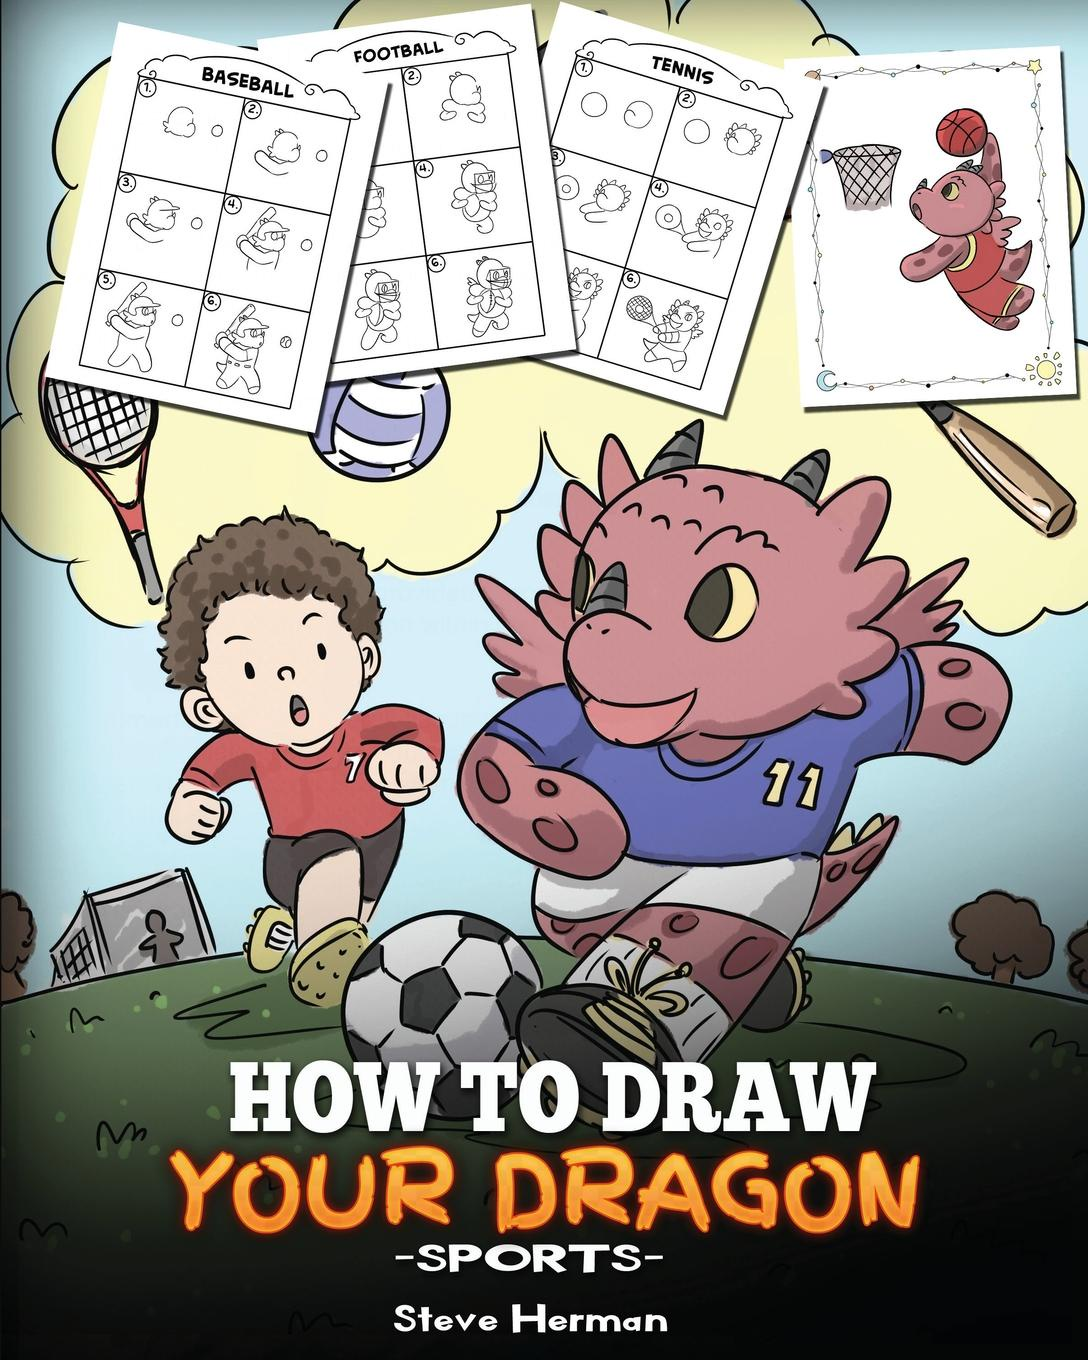 Steve Herman How To Draw Your Dragon (Sports). Learn How to Draw Cute Dragons Playing Fun Sports. A Fun and Easy Step by Step Guide To Draw Dragons and Teach Popular Sports for Kids how to draw early learning fun